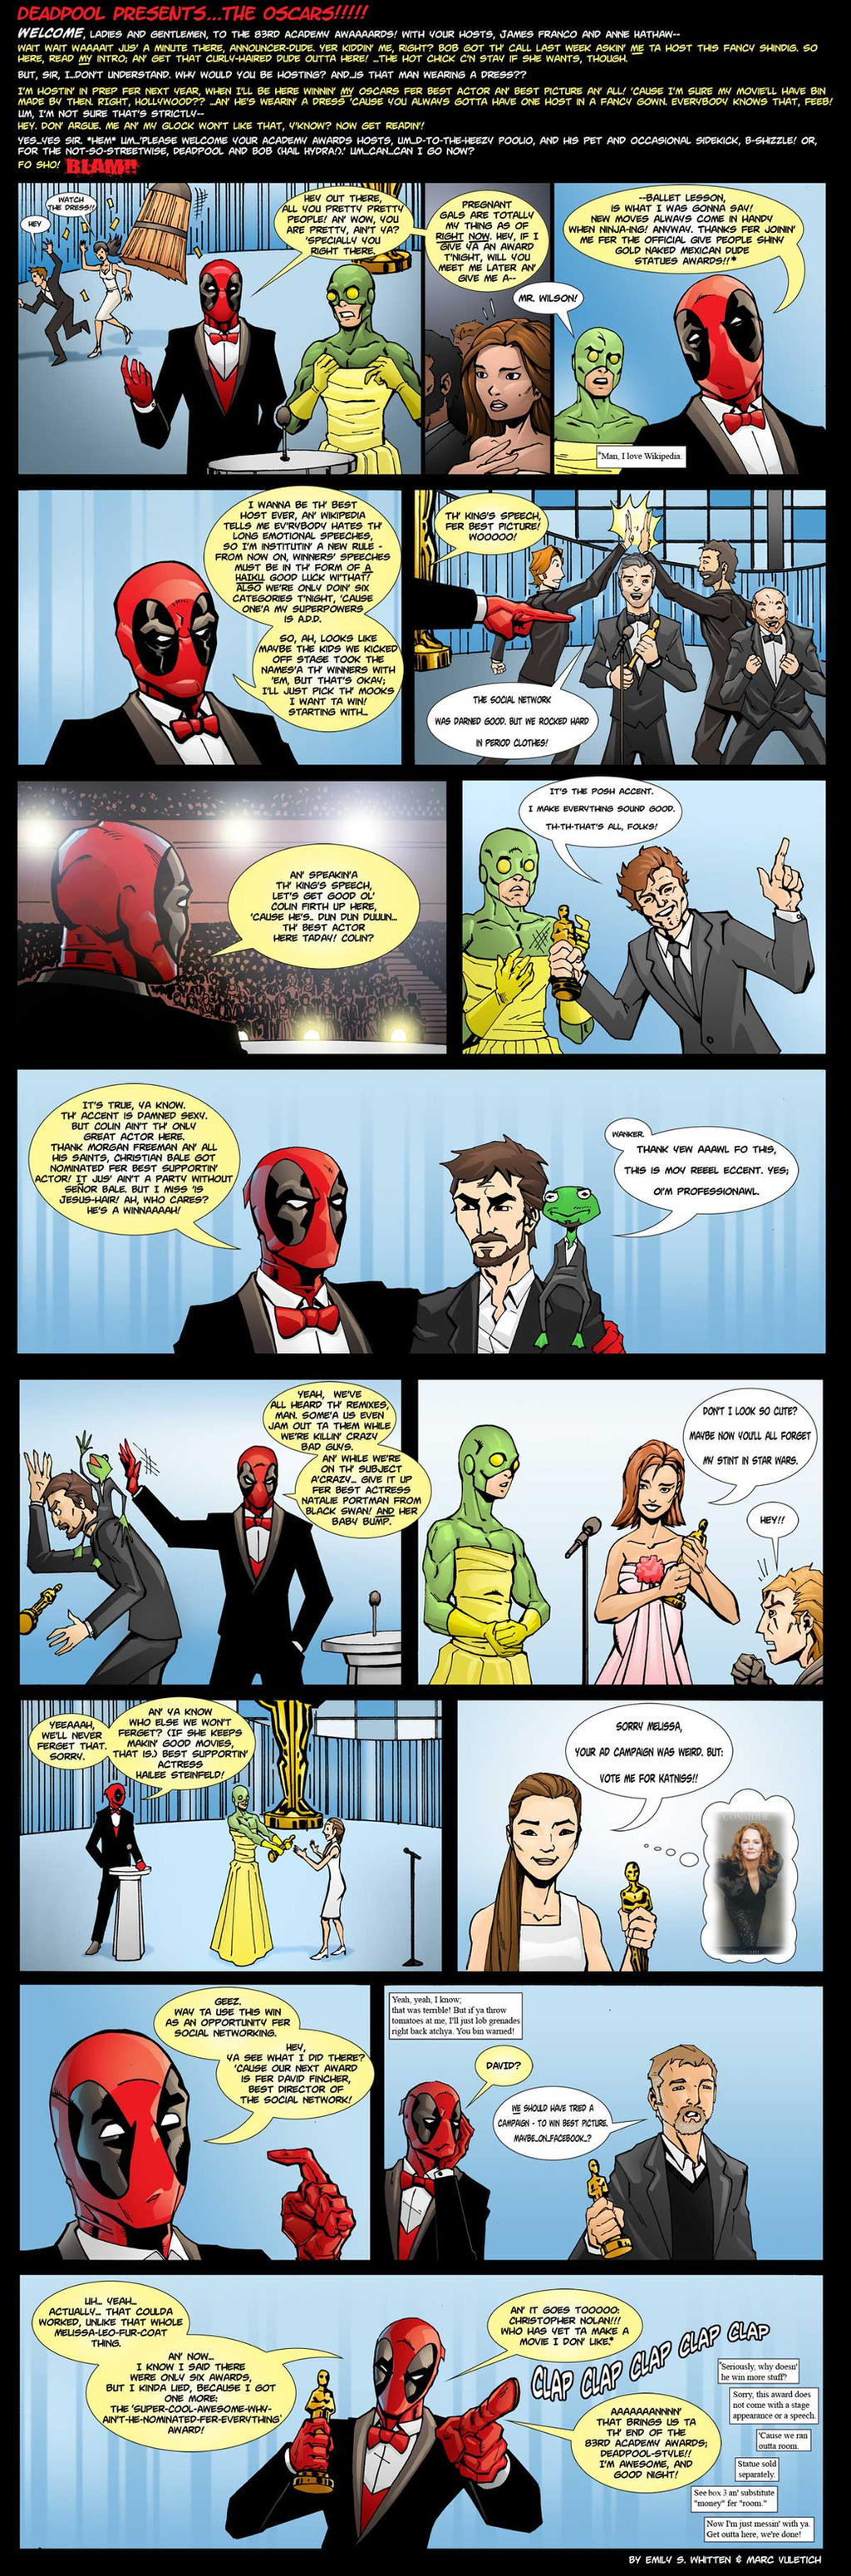 Deadpool Presents the Oscars by ScarletVulture